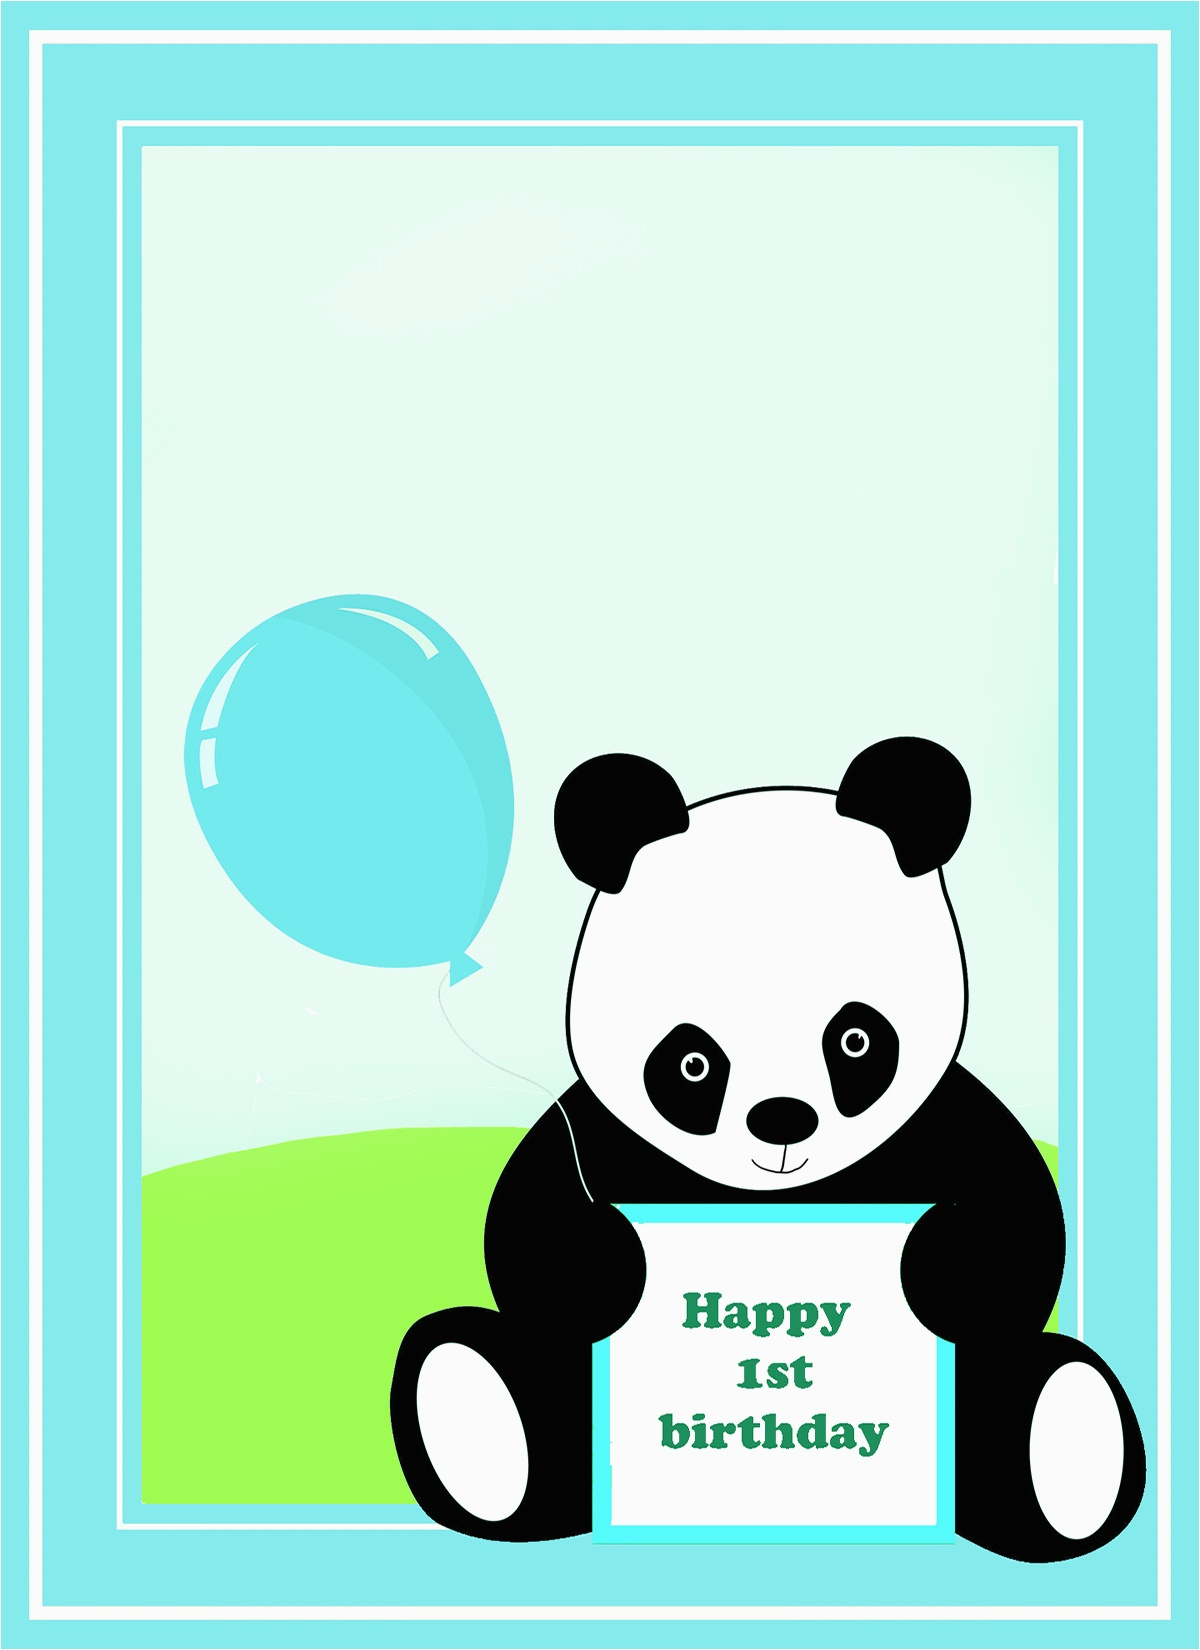 Panda Birthday Card Template | Birthdaybuzz - Panda Bear Invitations - Panda Bear Invitations Free Printable